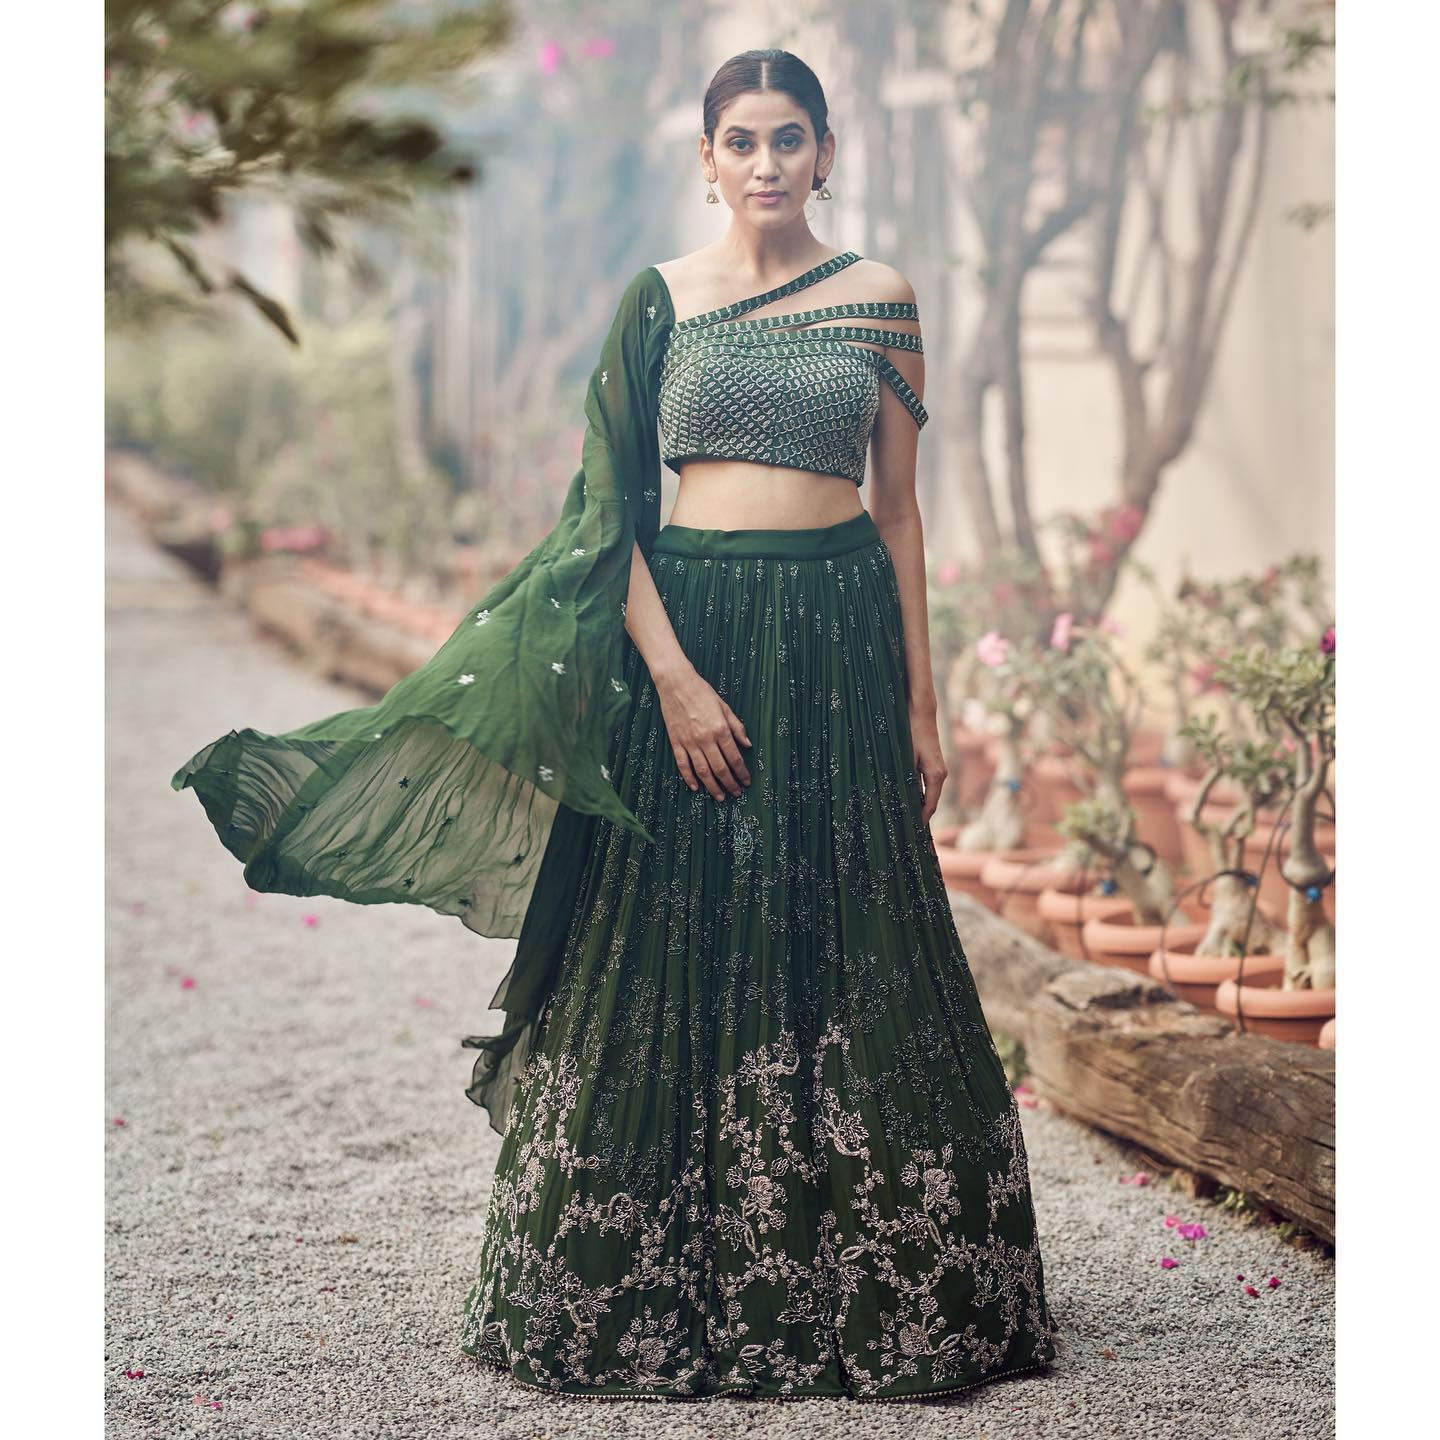 Phulwari . Andleeb seen here in pine needle green cutdana lehenga set. The intricate all over sparkling detail on this entire garment makes it a great piece for cocktails and sangeets . The blouse has a modernistic twist with a dupatta drape and quadruple straps.  To shop our new collection Phulwari  DM us or Whatsapp us on +91 6302 878 533 2021-06-27